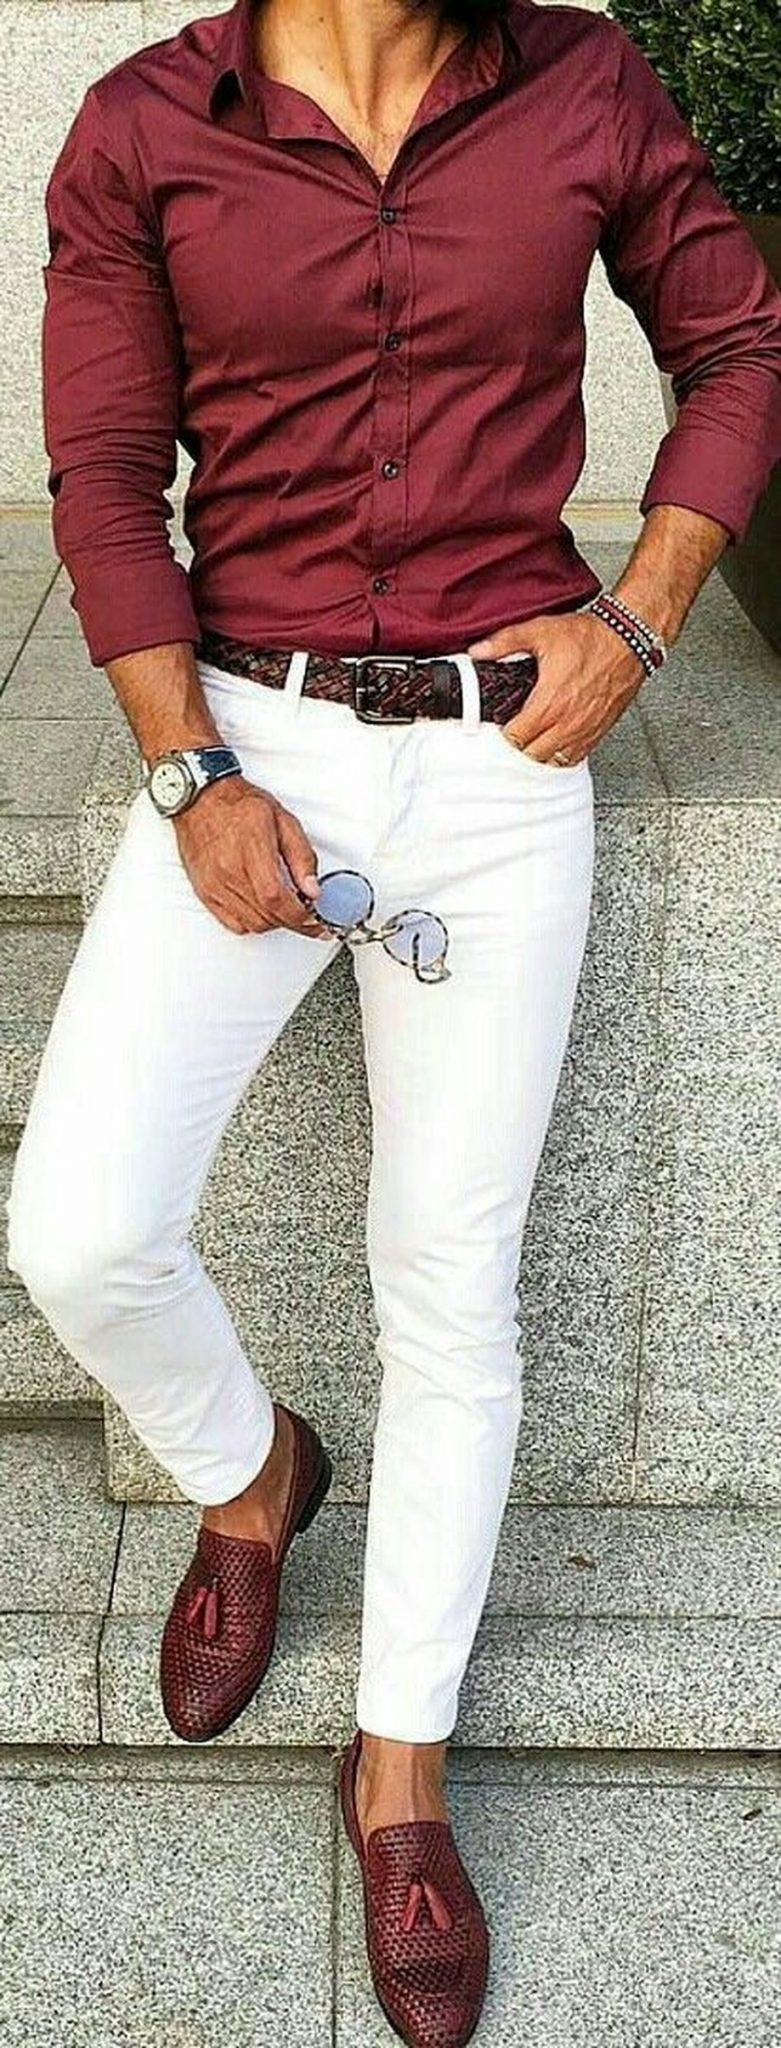 Cool Casual Men's Fashions Summer Outfits Ideas 4